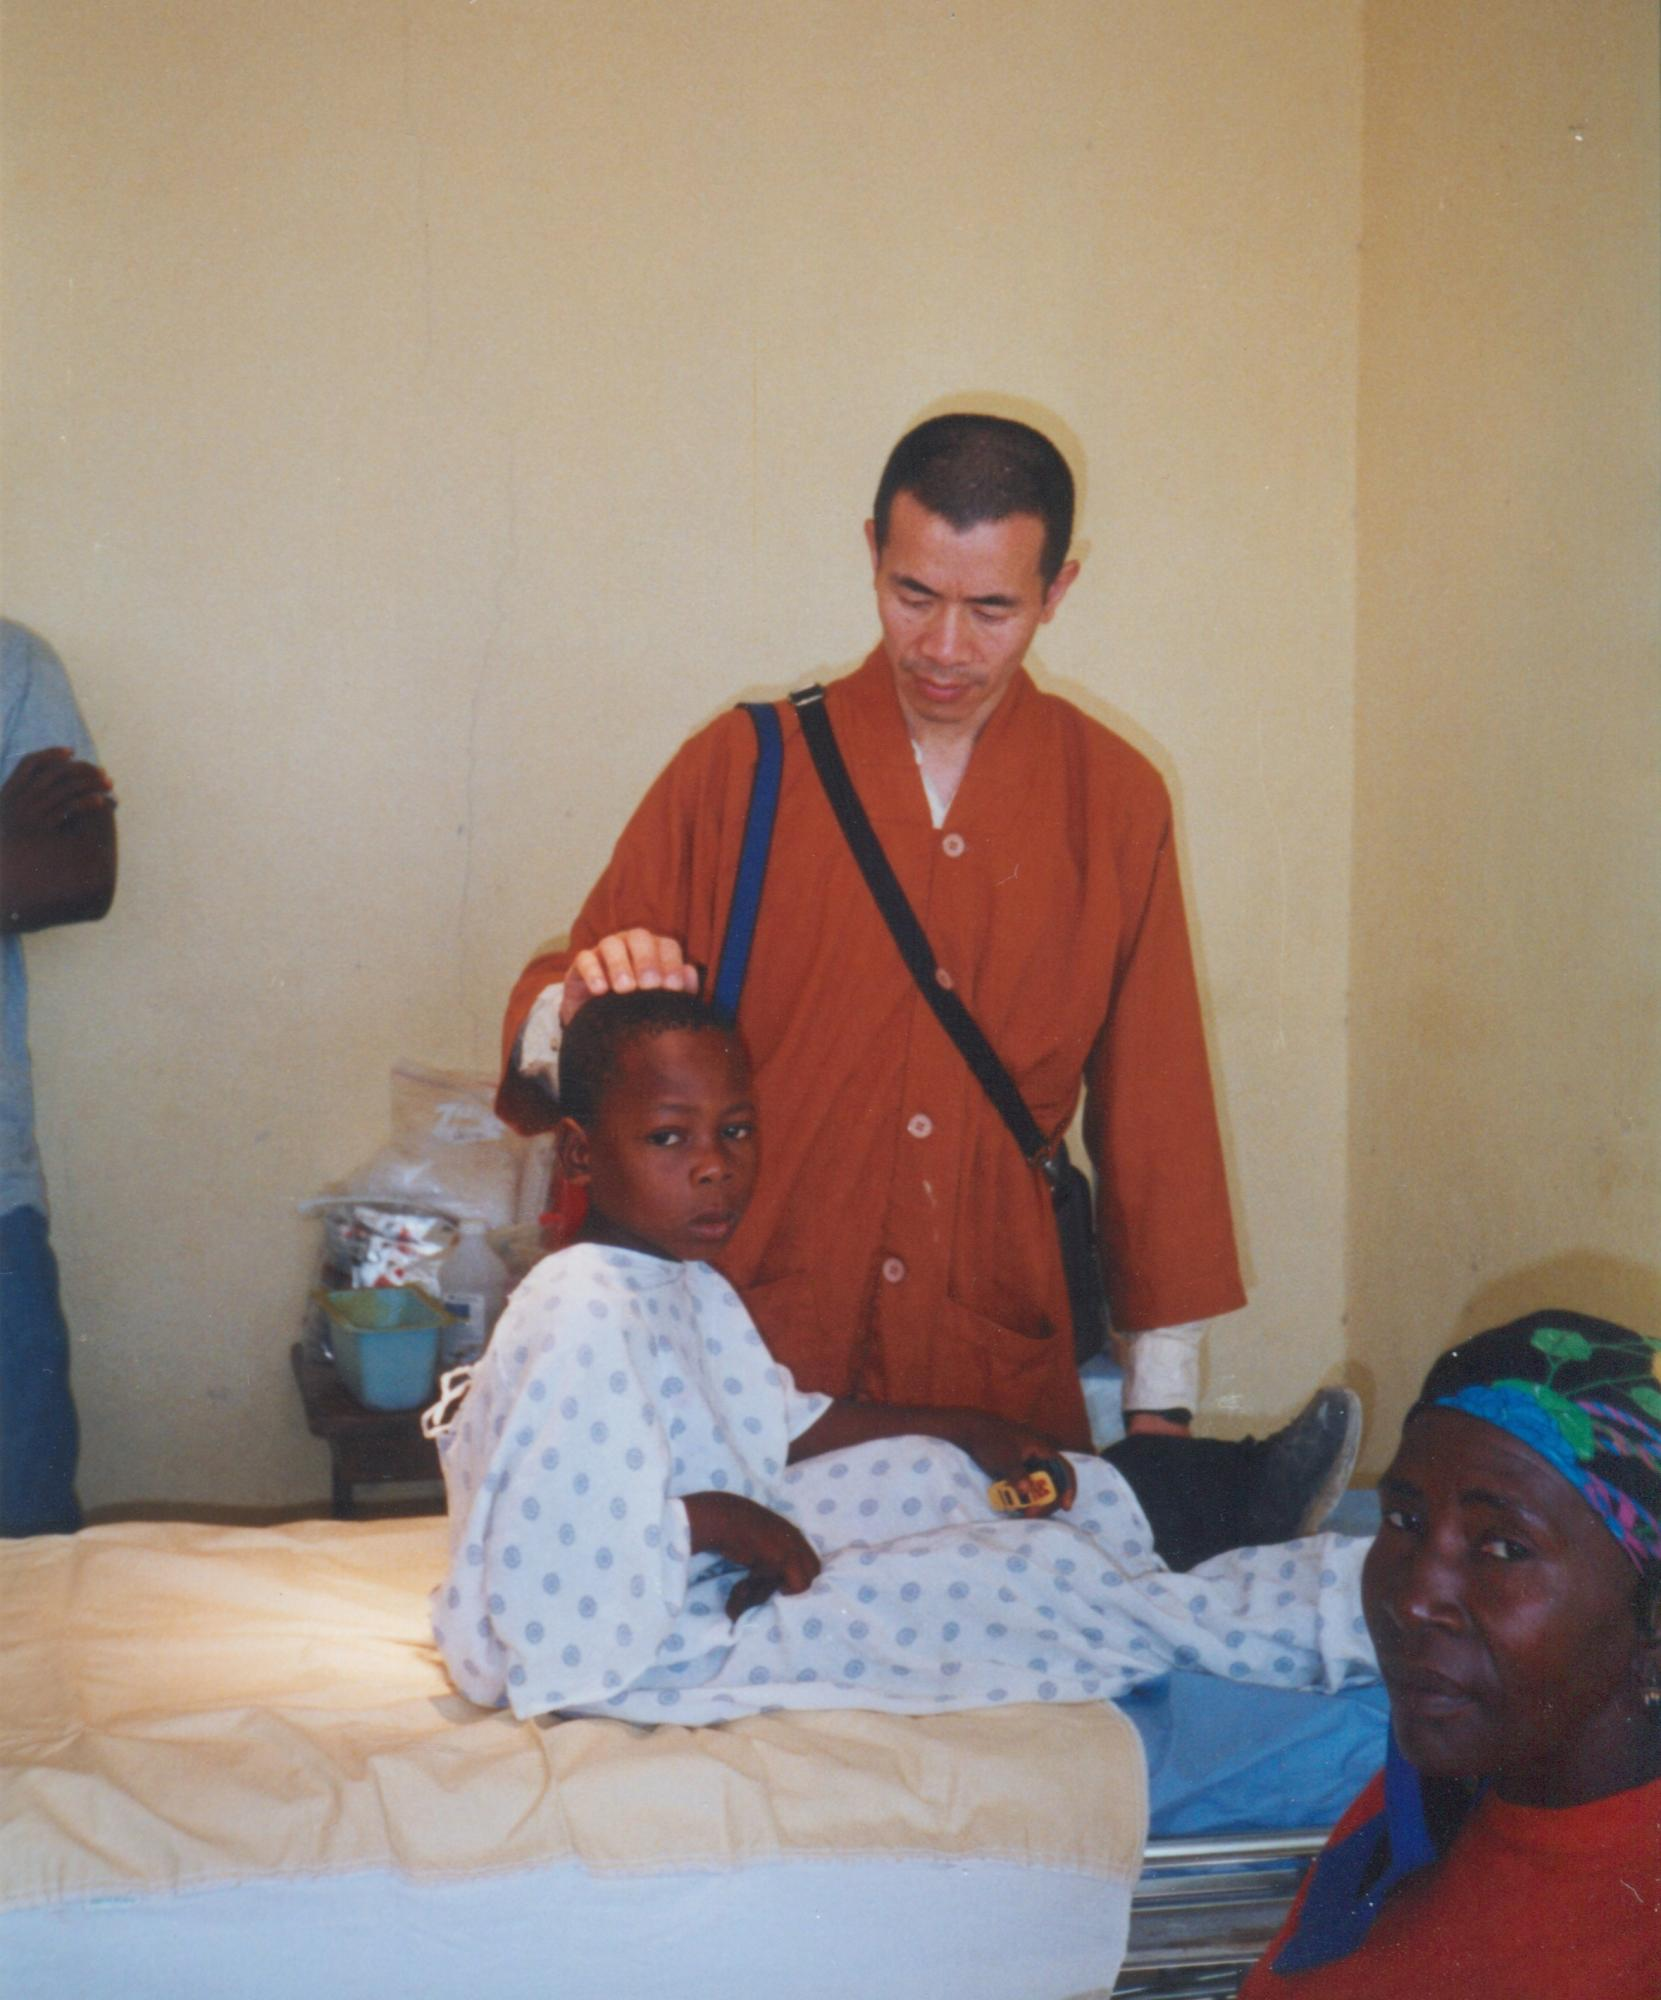 Practitioner_of_acupuncture_with_young_male_patient_circa_2001__image14.jpg